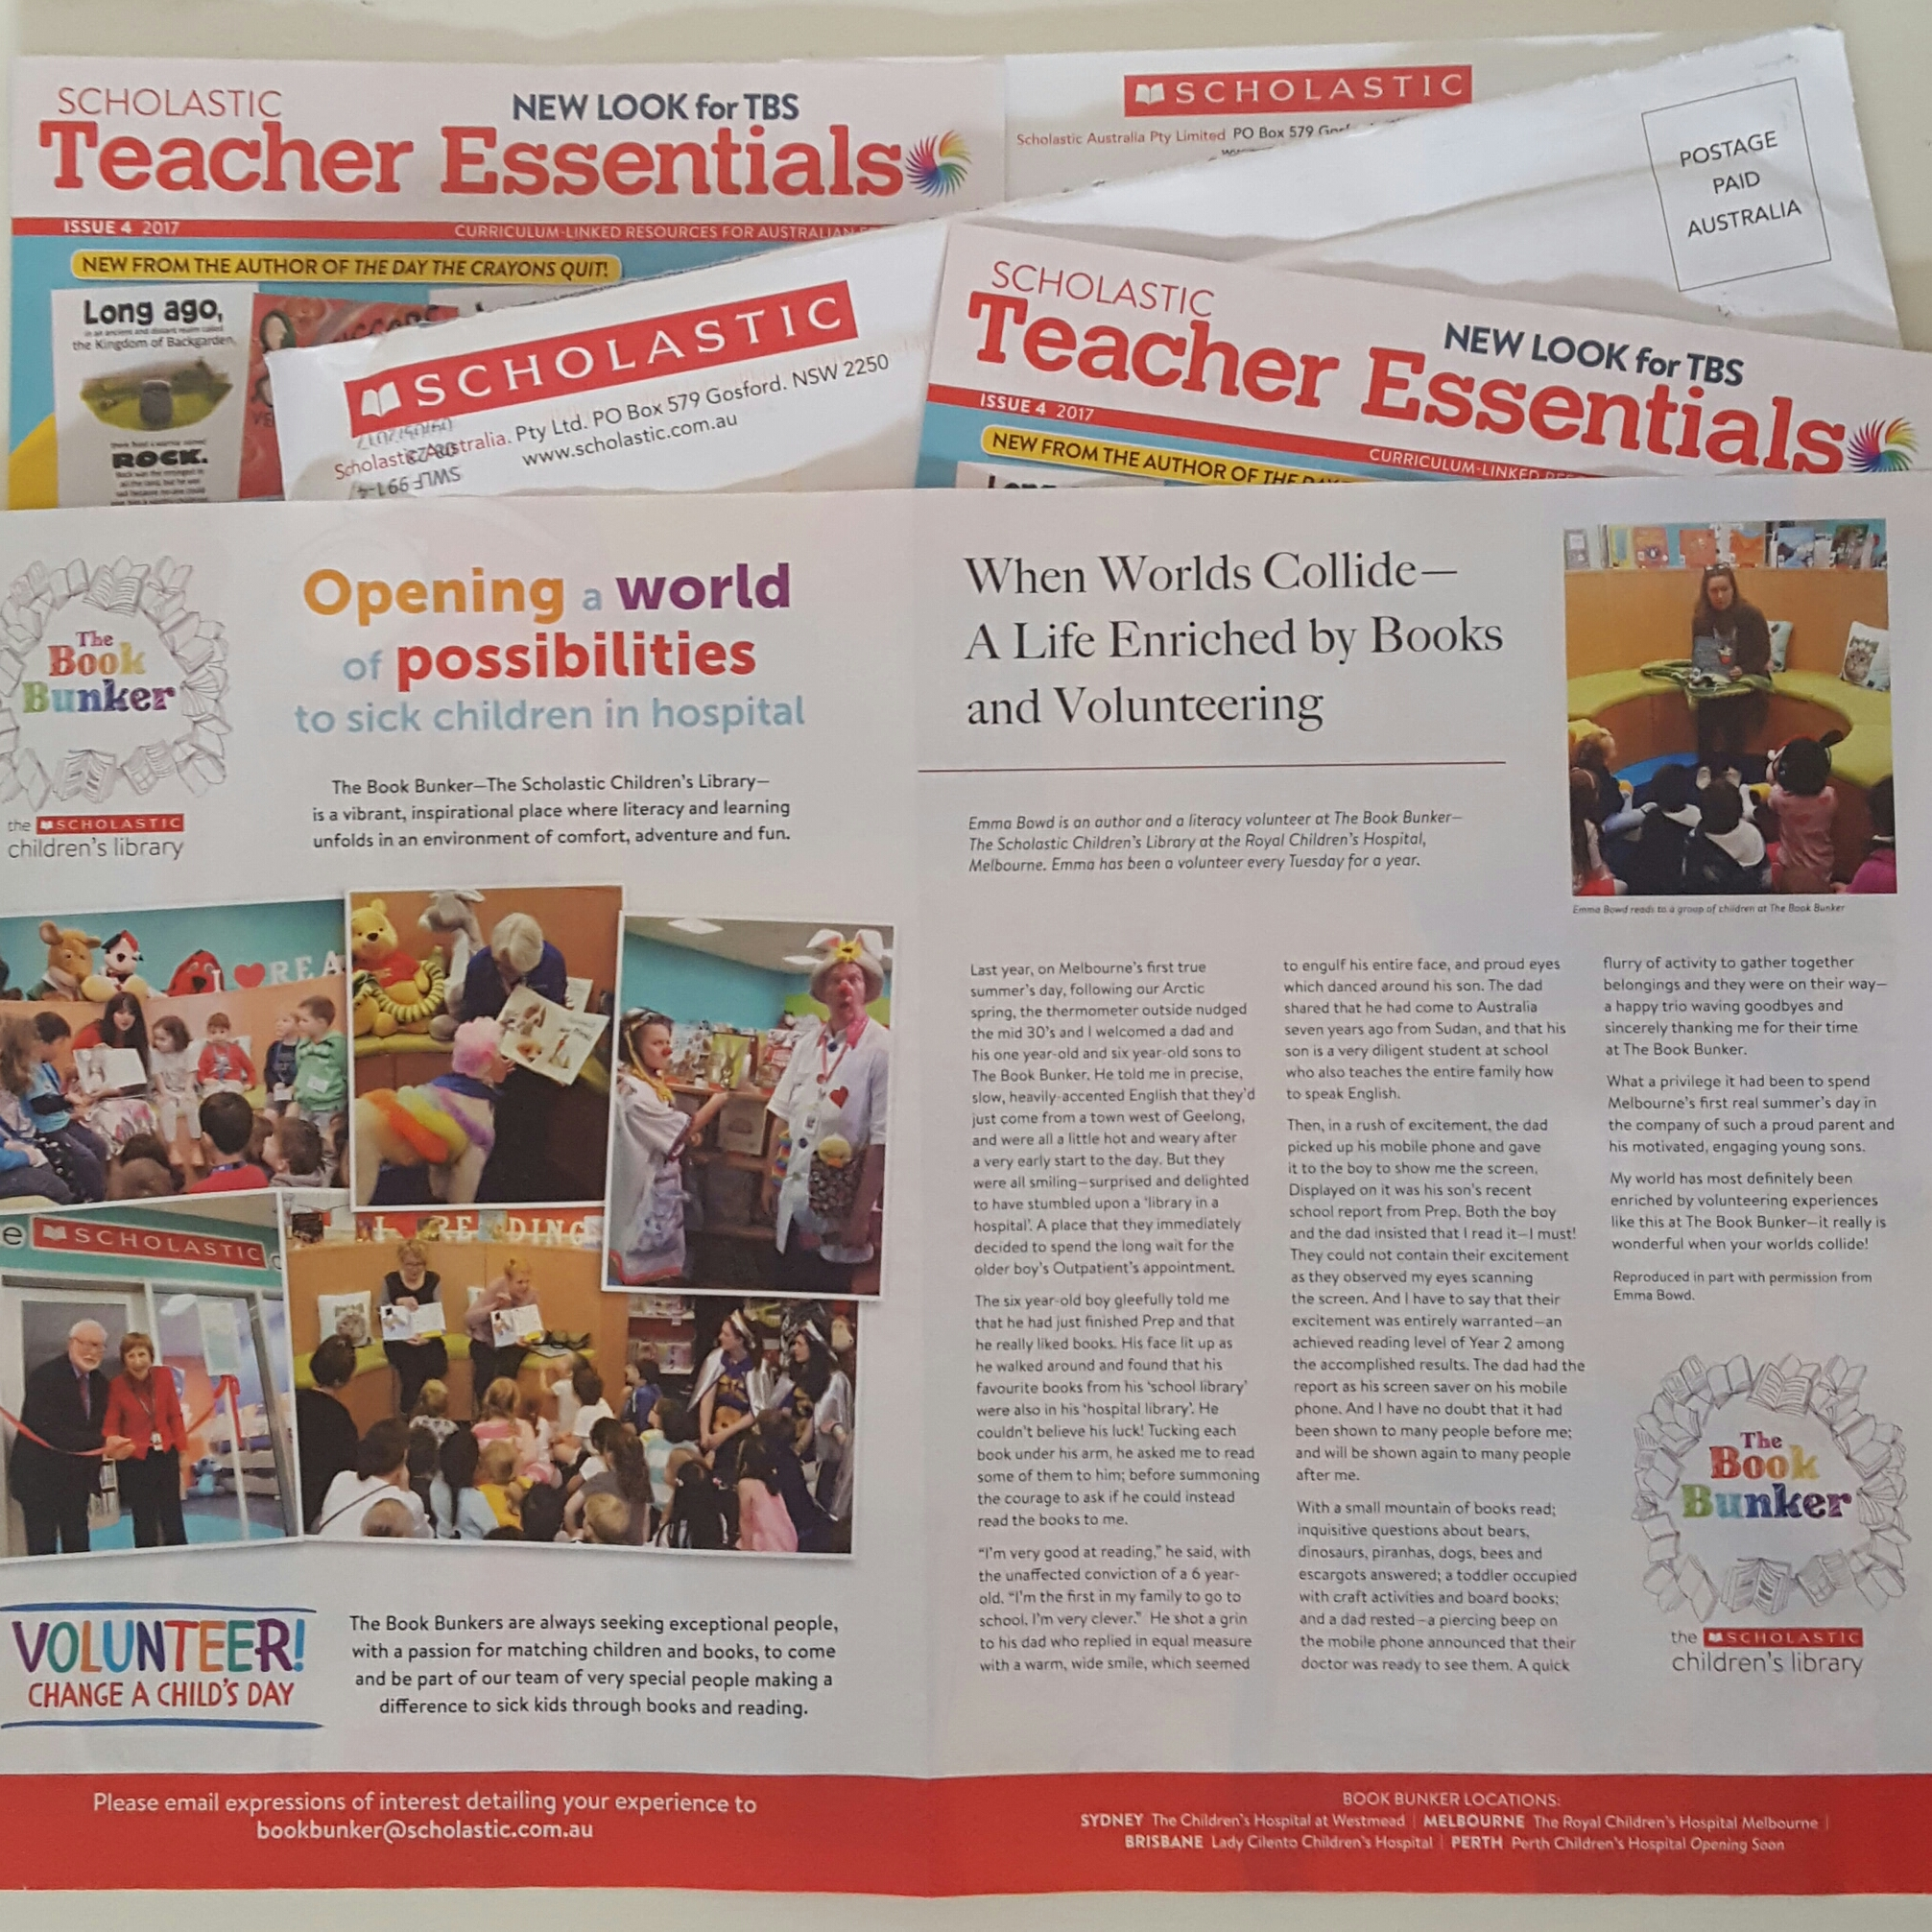 Scholastic Teacher Essentials Magazine - Issue 4, May 2017 - Emma Bowd